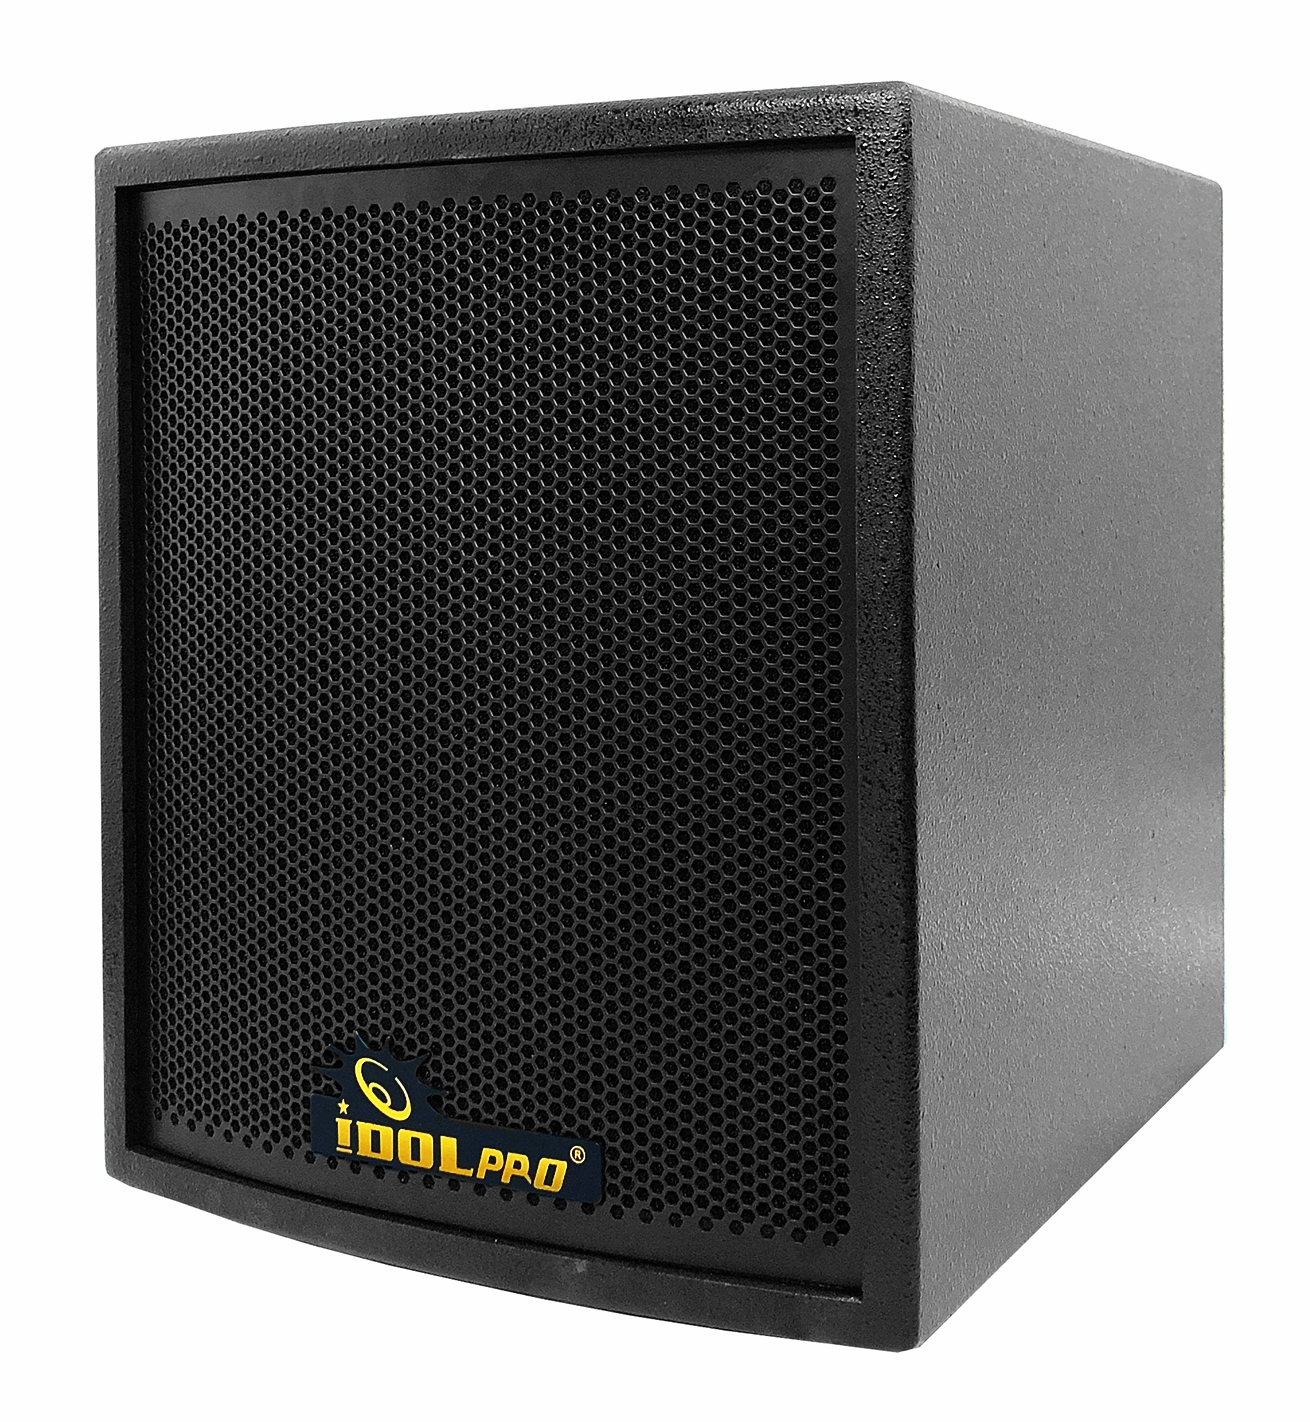 "IDOLpro SUB-07 1000W 12"" High Power Active Subwoofer <font color="" ORANGE""><b>NEW 2020</b></font>"